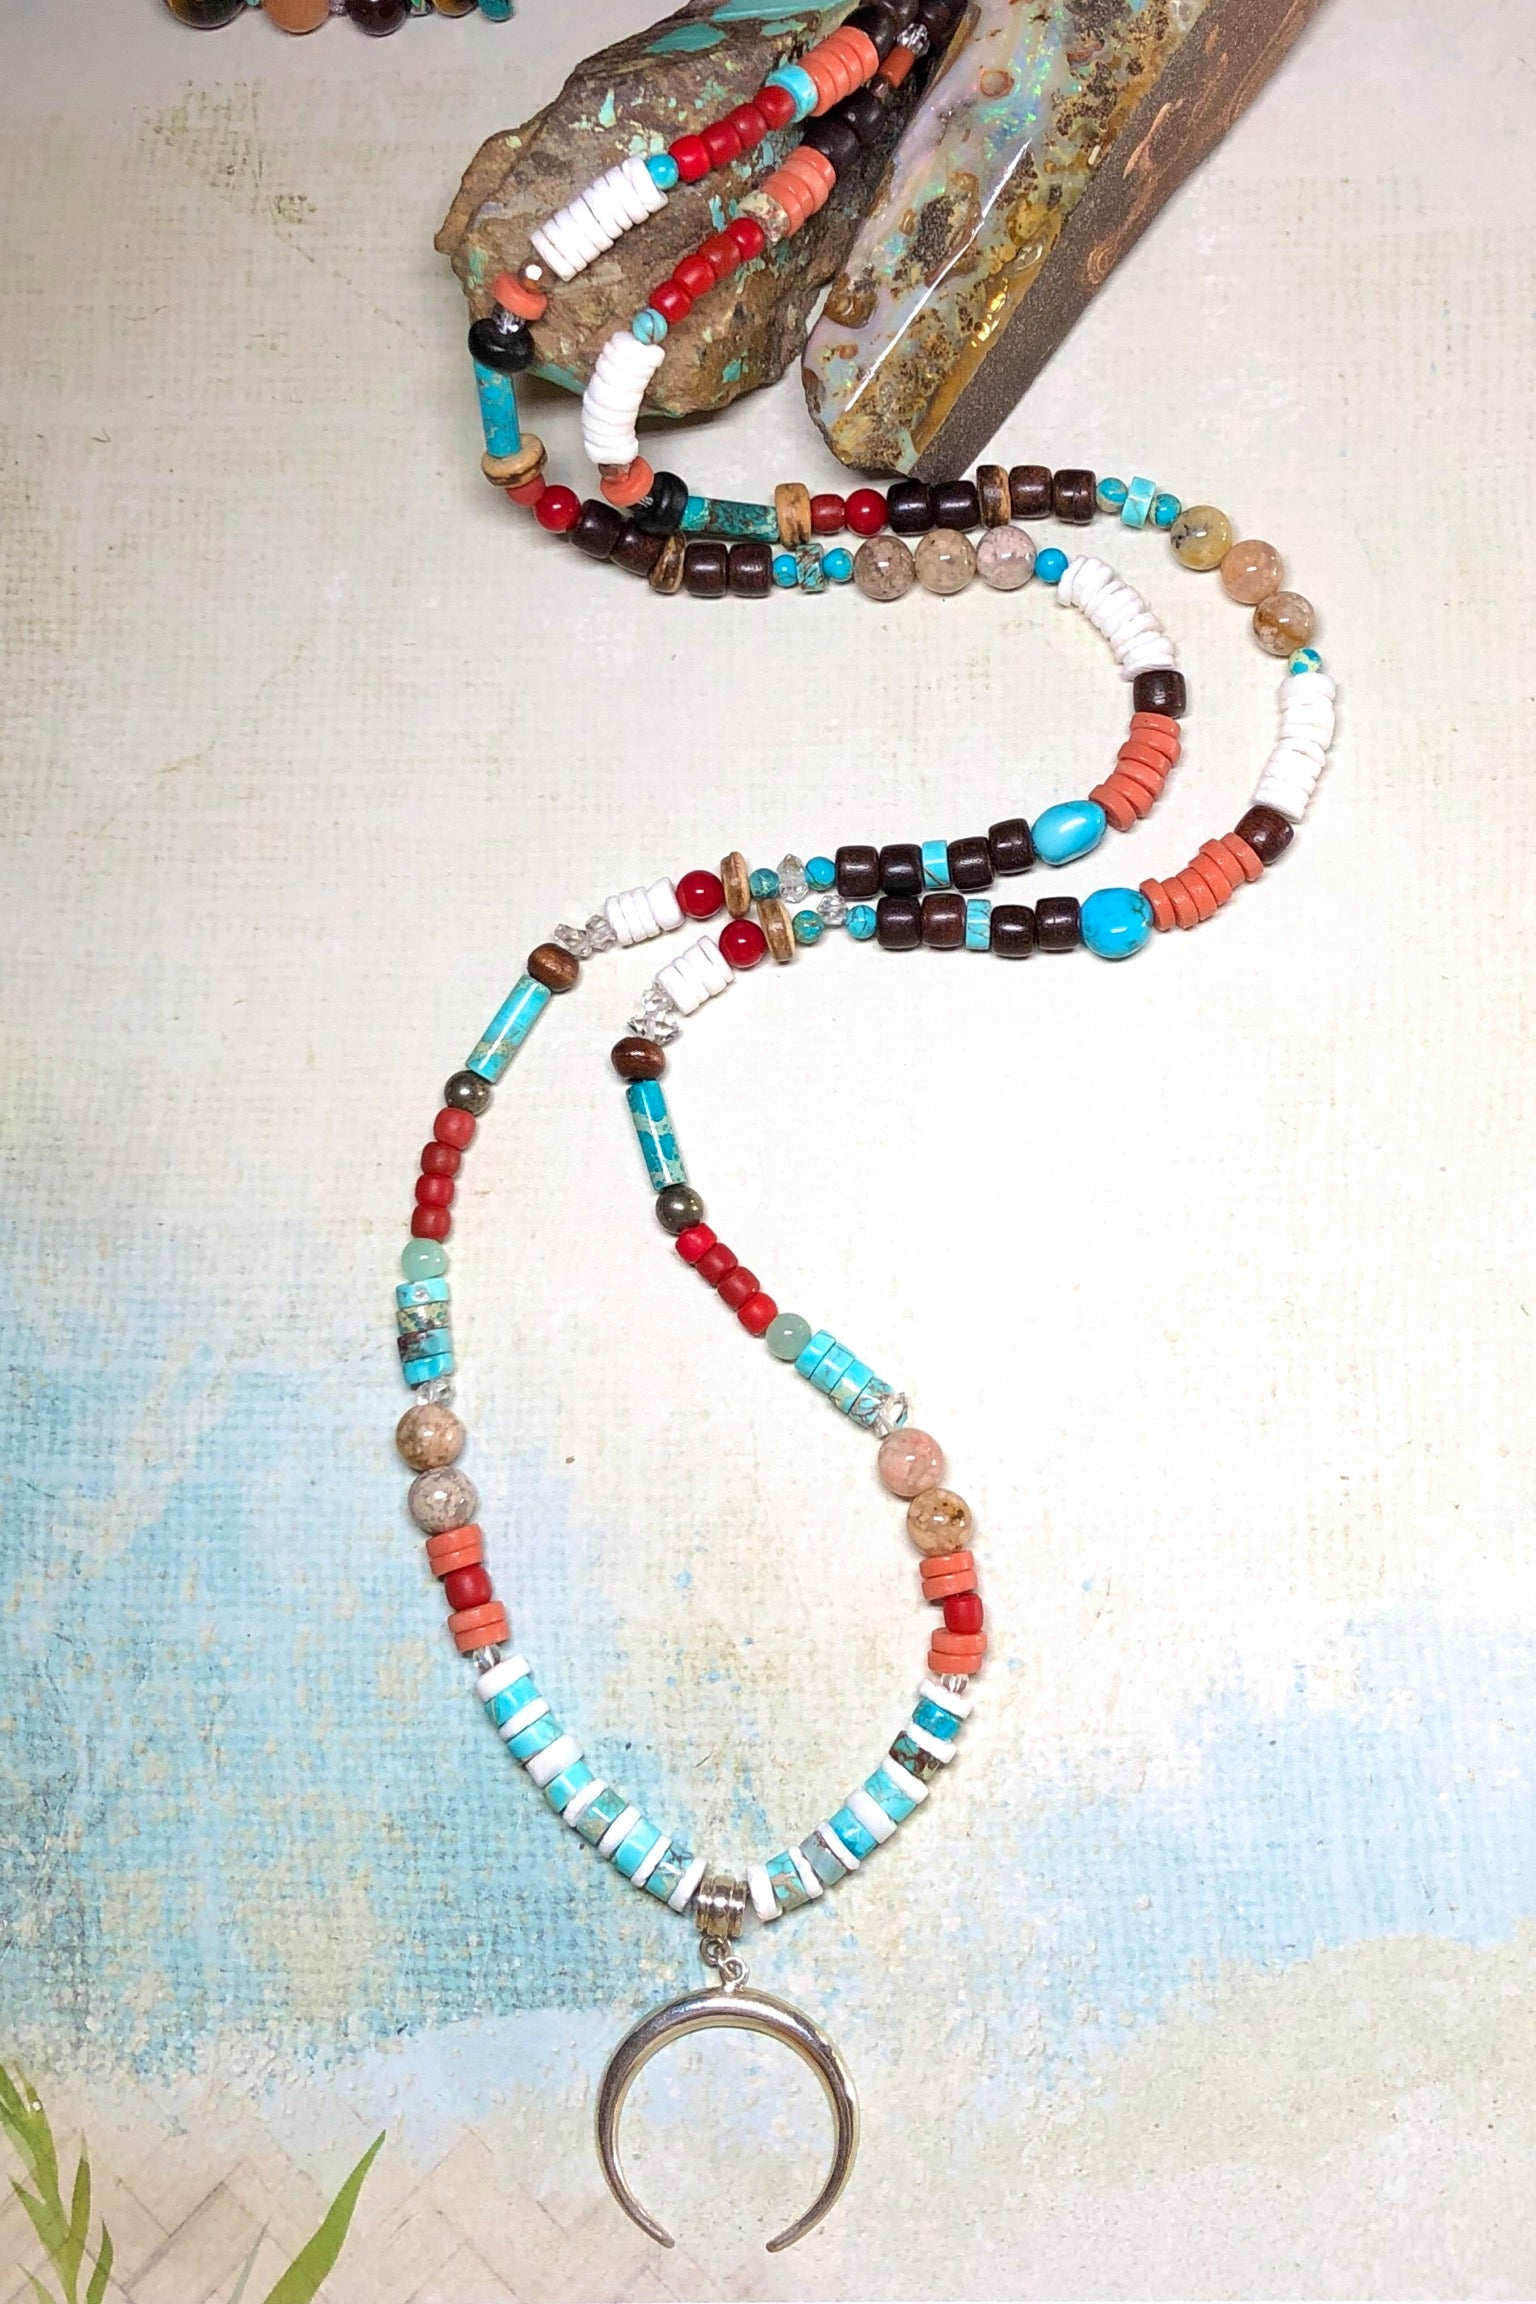 Necklace Cay Crescent Tucson with Natural Gemstones, 925 sterling silver pendant, Stones include Coral, Rock Crystal, Howlite, Haematite, Antique Glass, Rose Quartz, Shell and Antique African beads.